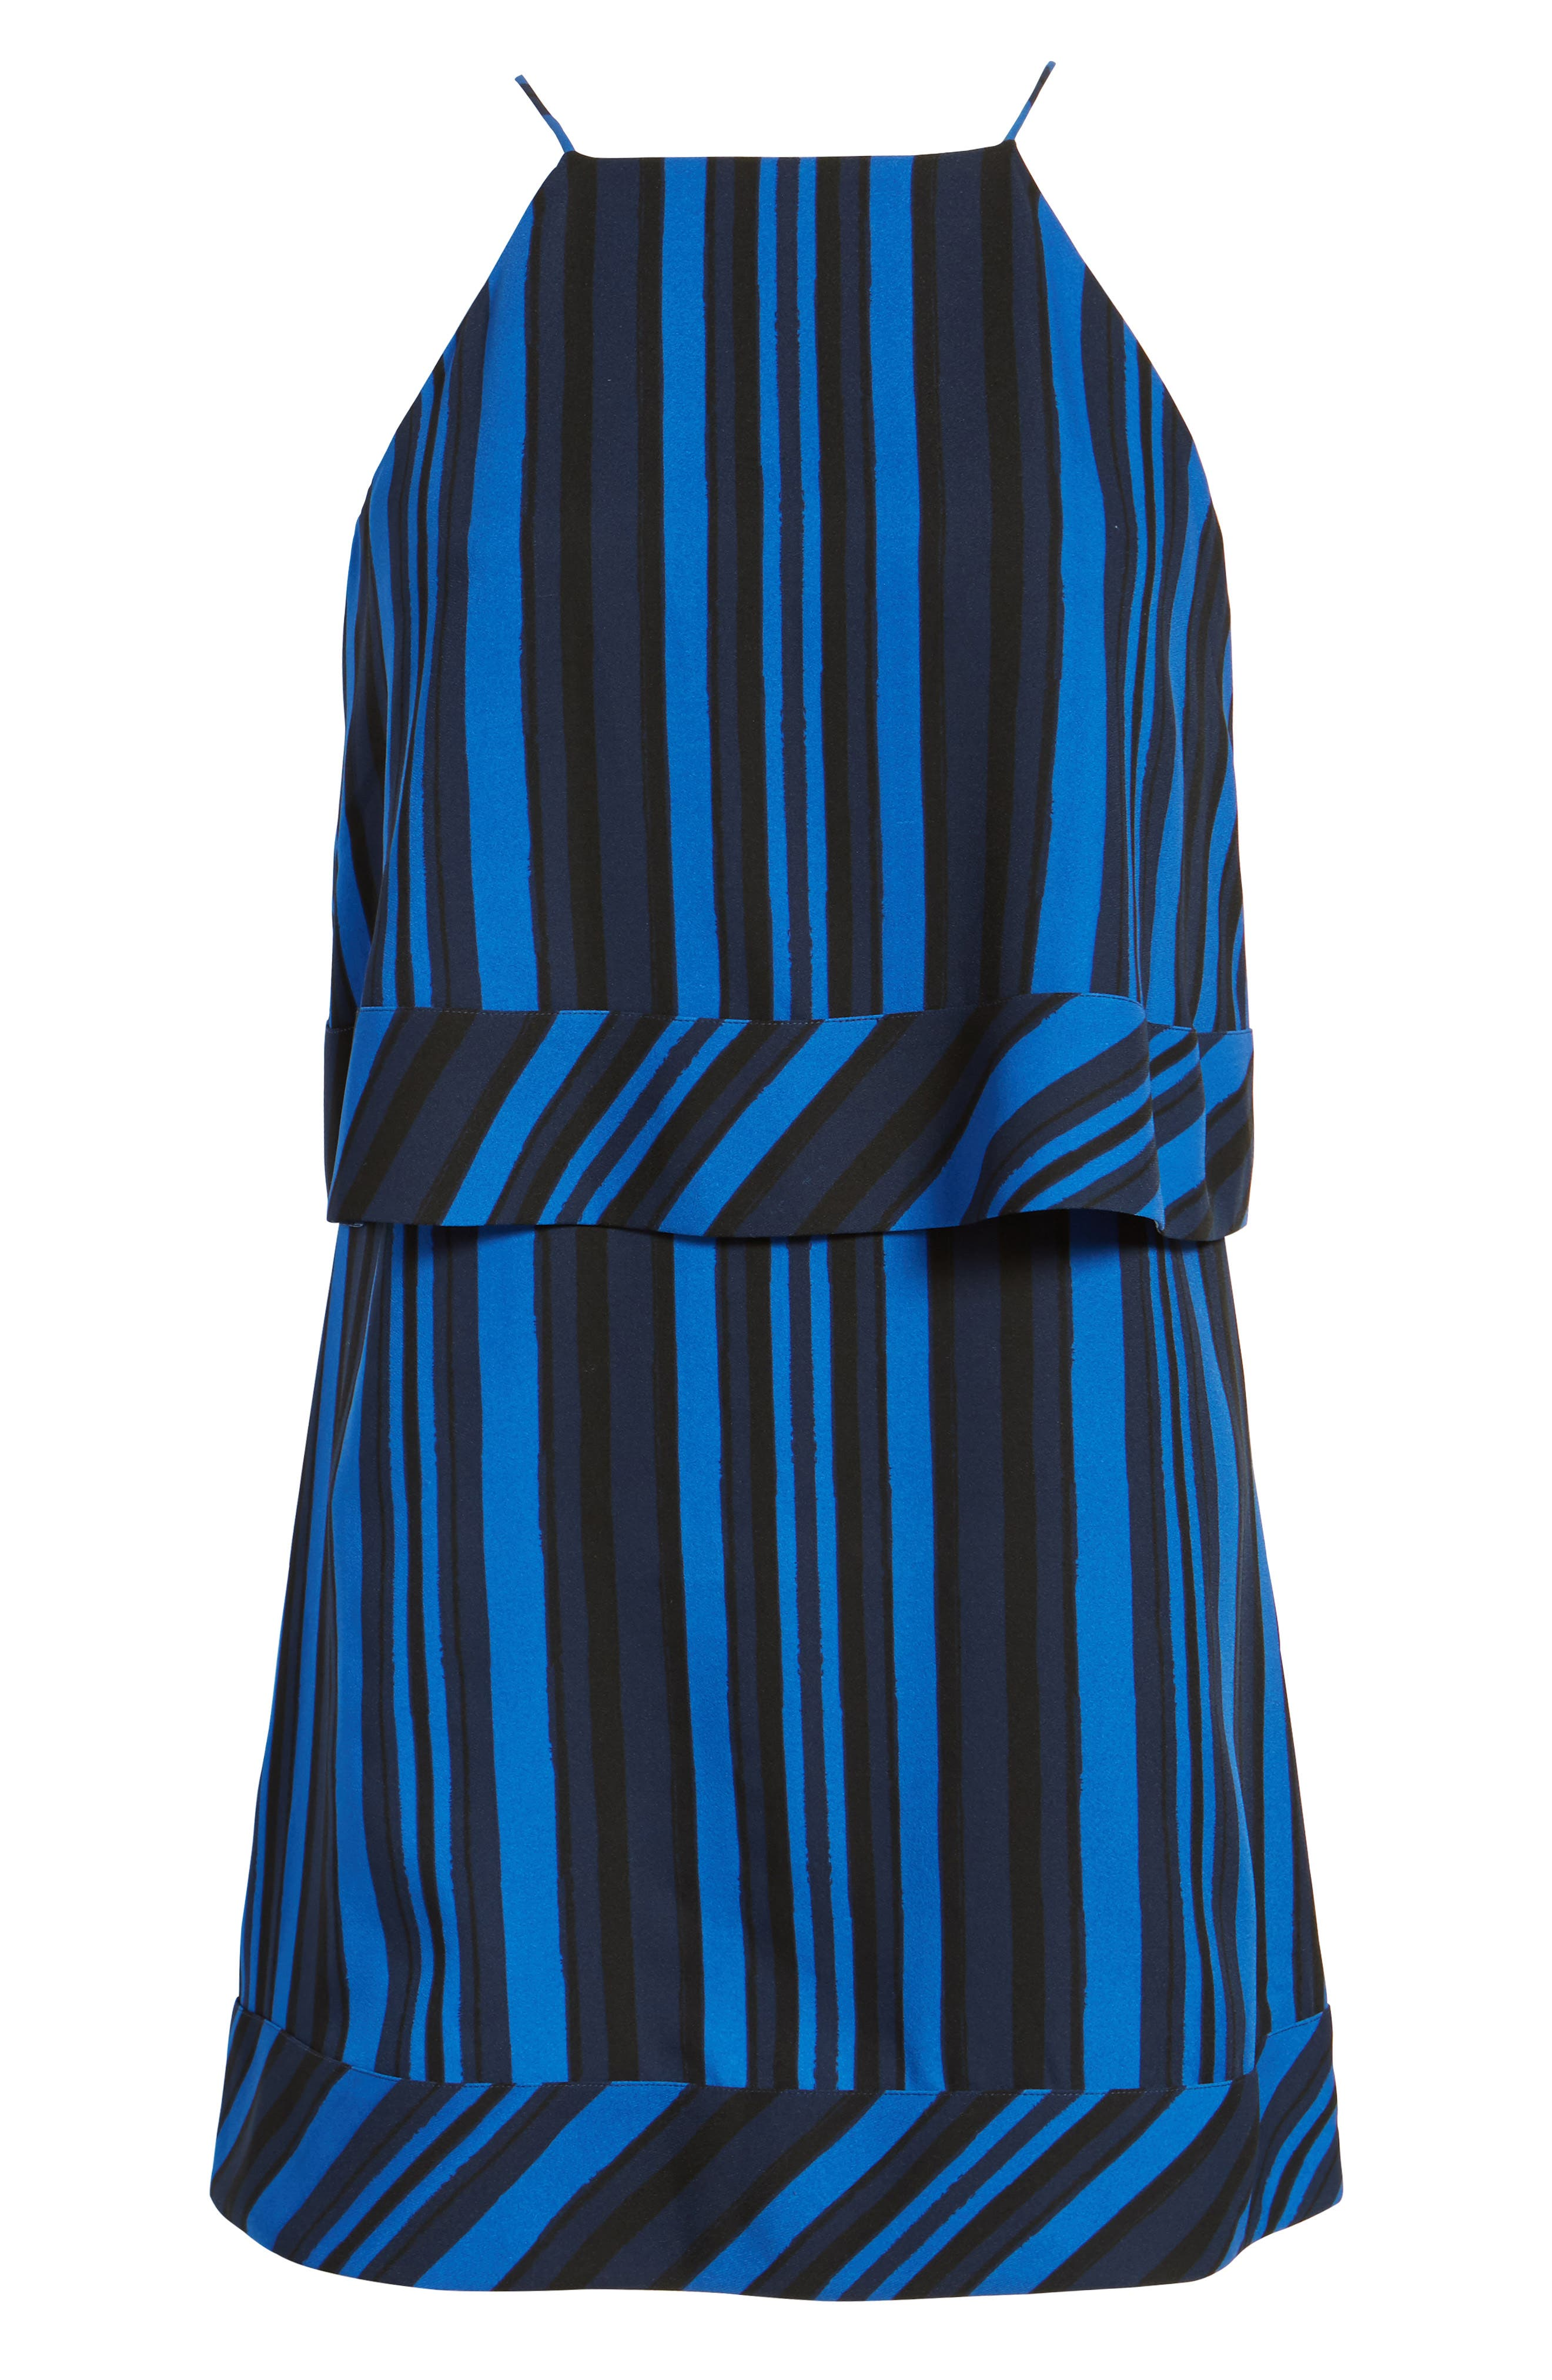 Callie Tiered Shift Dress,                             Alternate thumbnail 6, color,